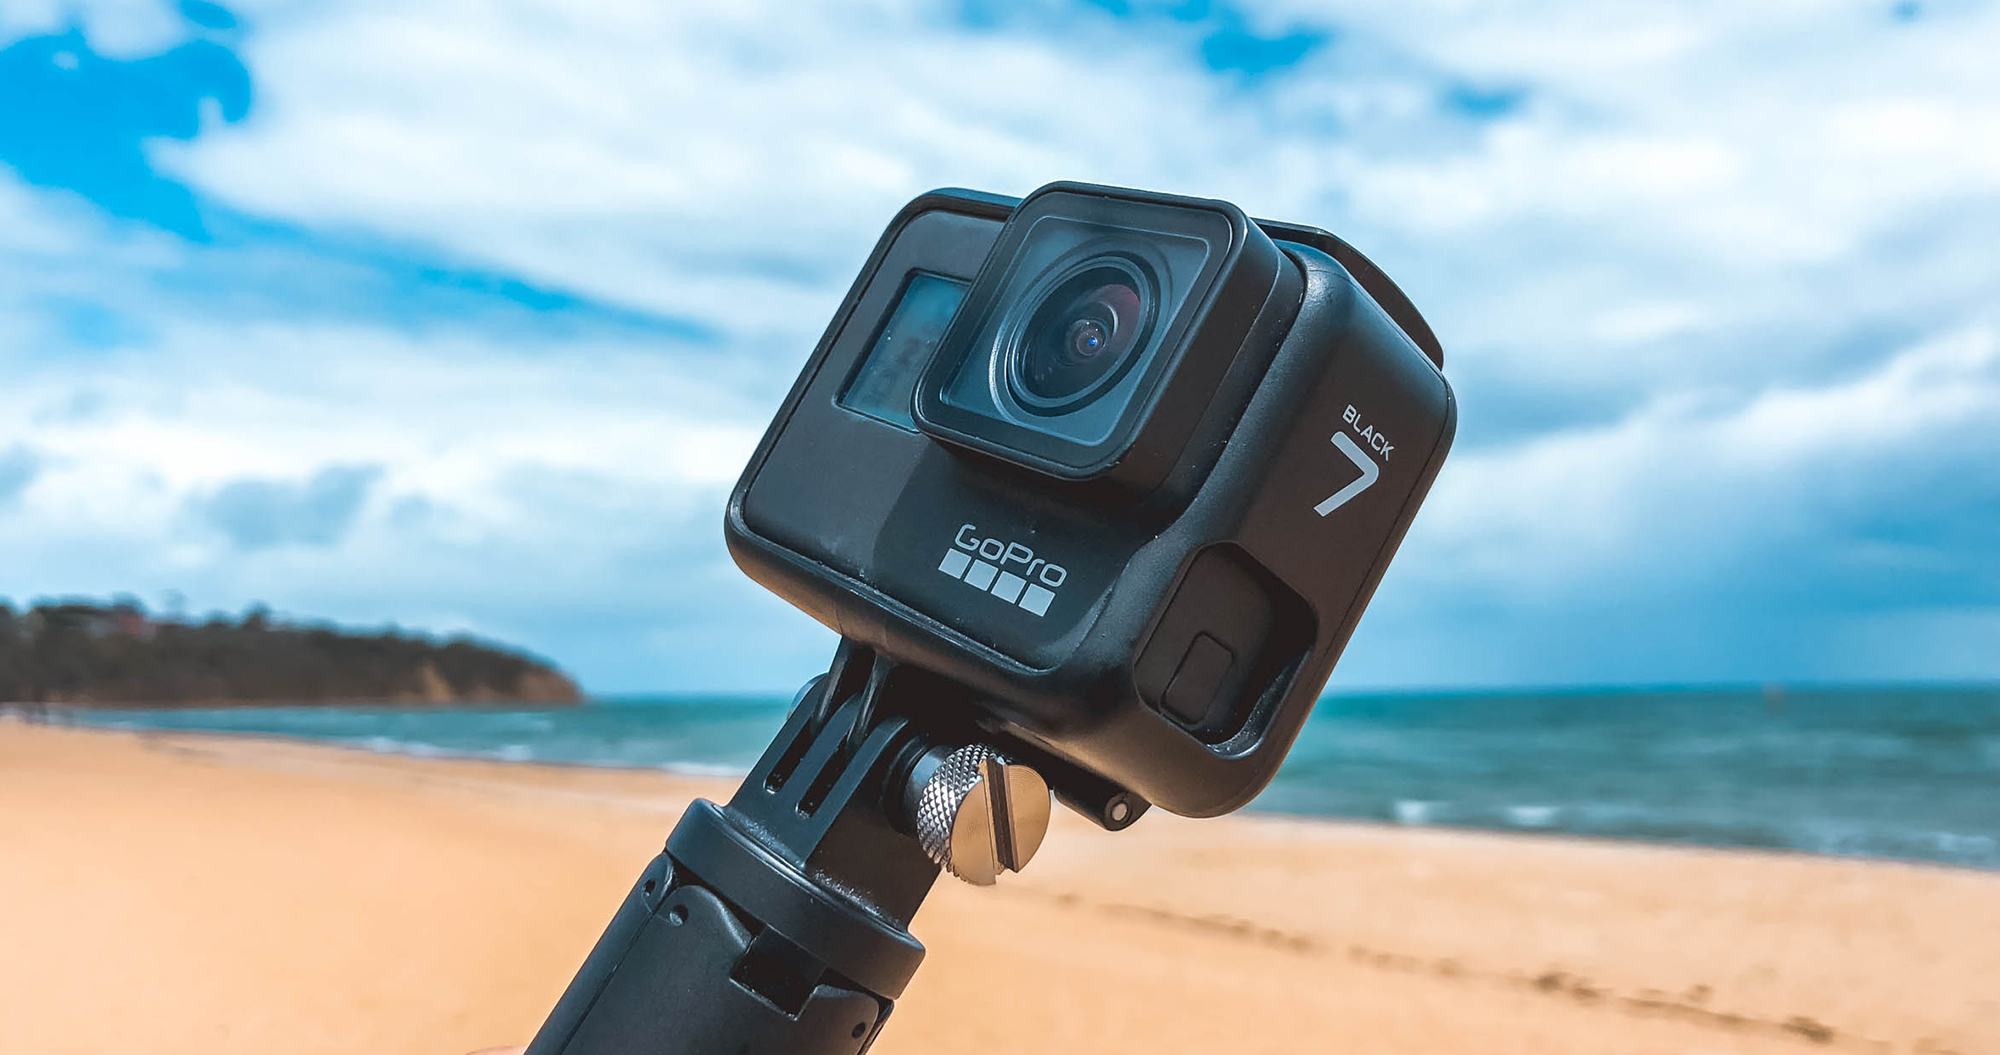 Review Gopro Hero 7 Black Should You Buy It For Travel Backpacker Banter